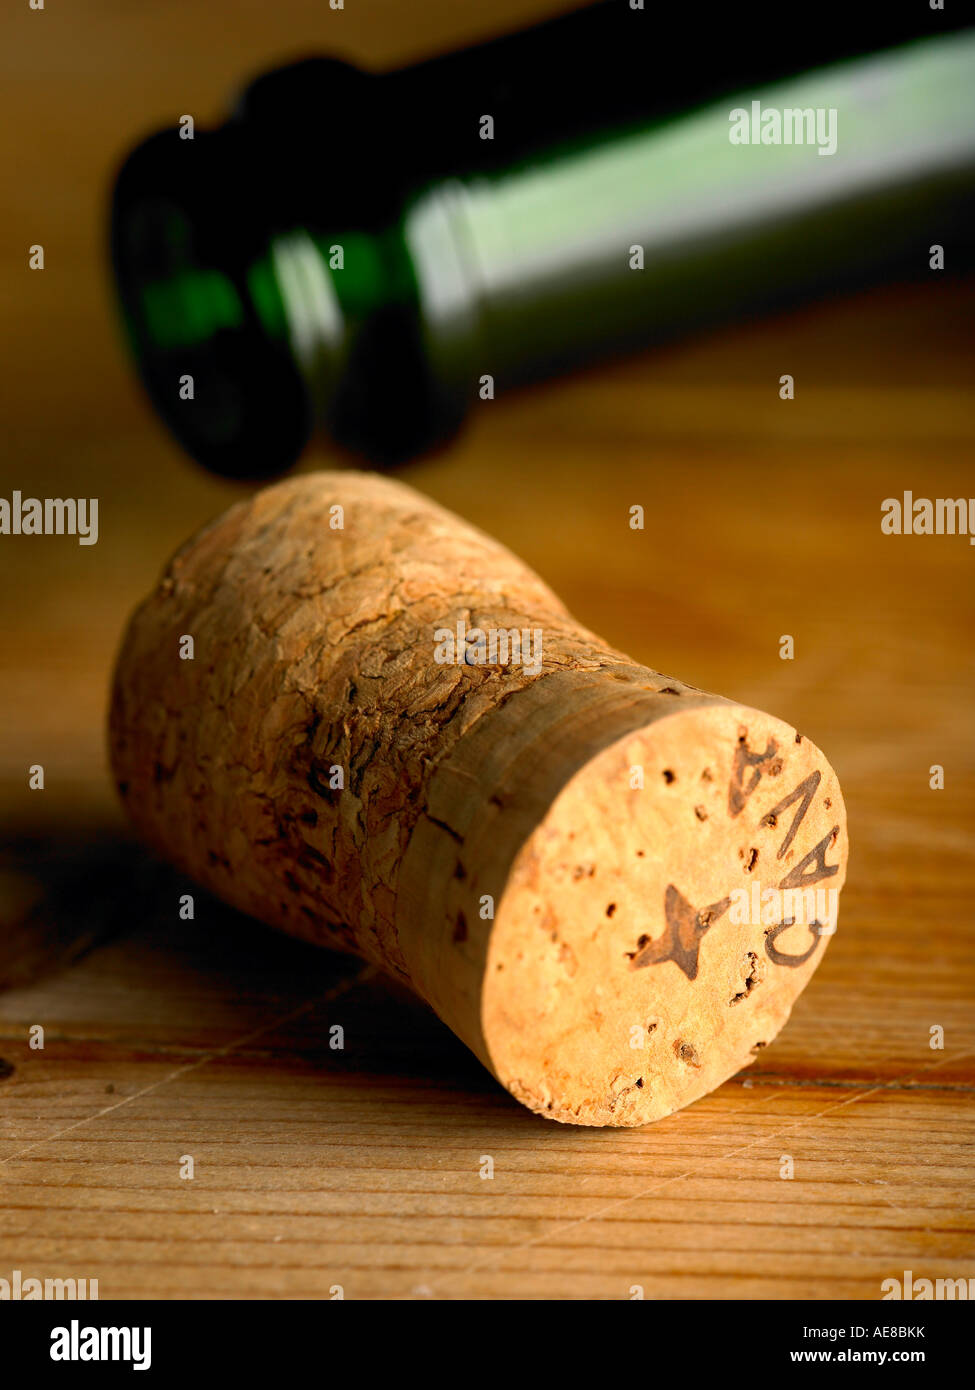 Pulled The Plug Stock Photos & Pulled The Plug Stock Images - Alamy